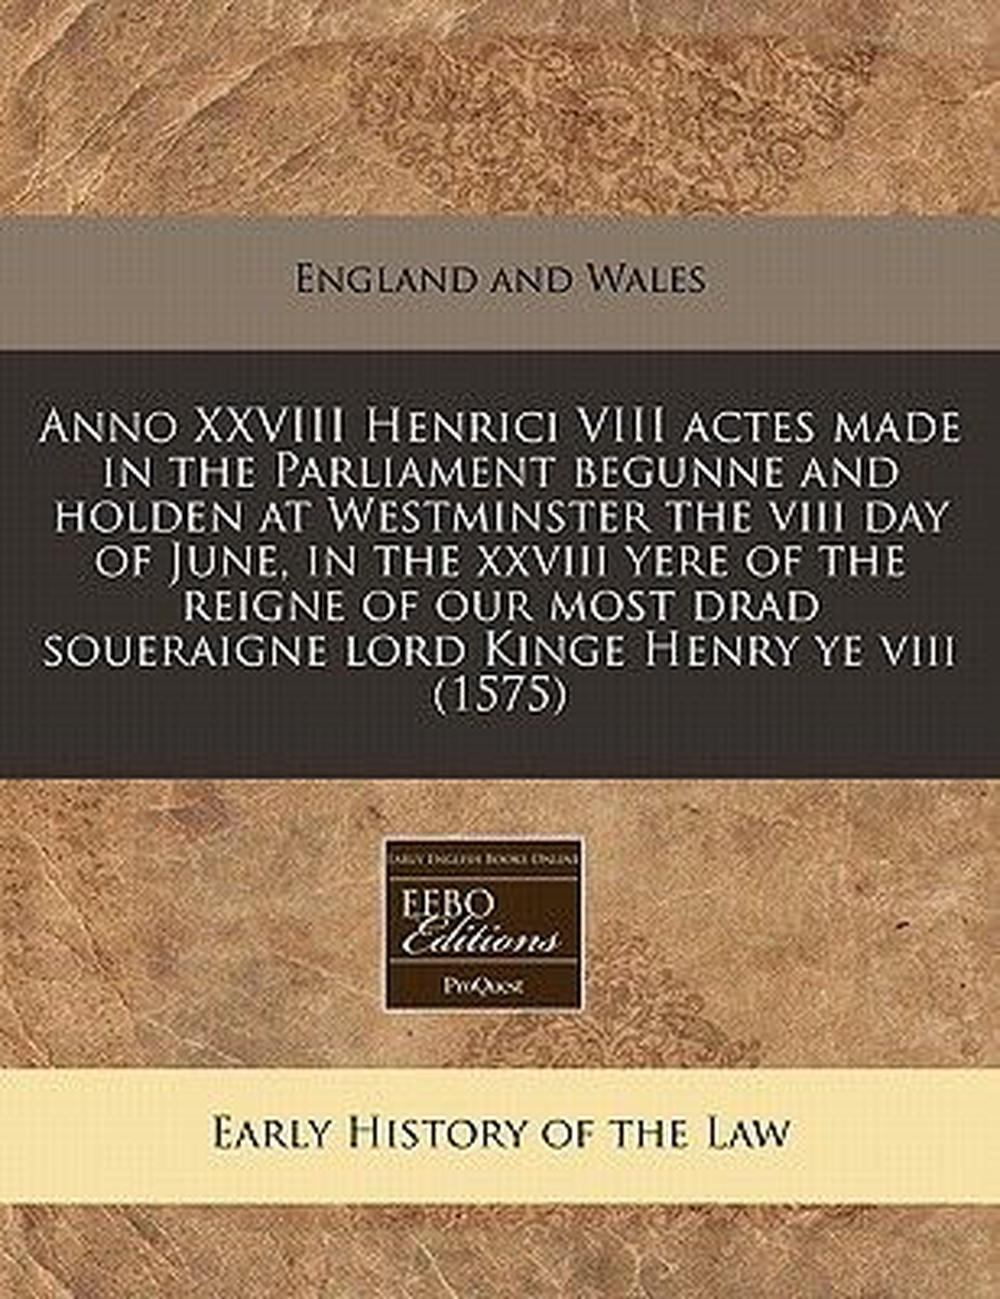 common law reasoning and institutions English common law emerged from the changing and centralizing powers of the king during the middle ages after the norman conquest in 1066, medieval kings began to consolidate power and establish new institutions of royal authority and justice.